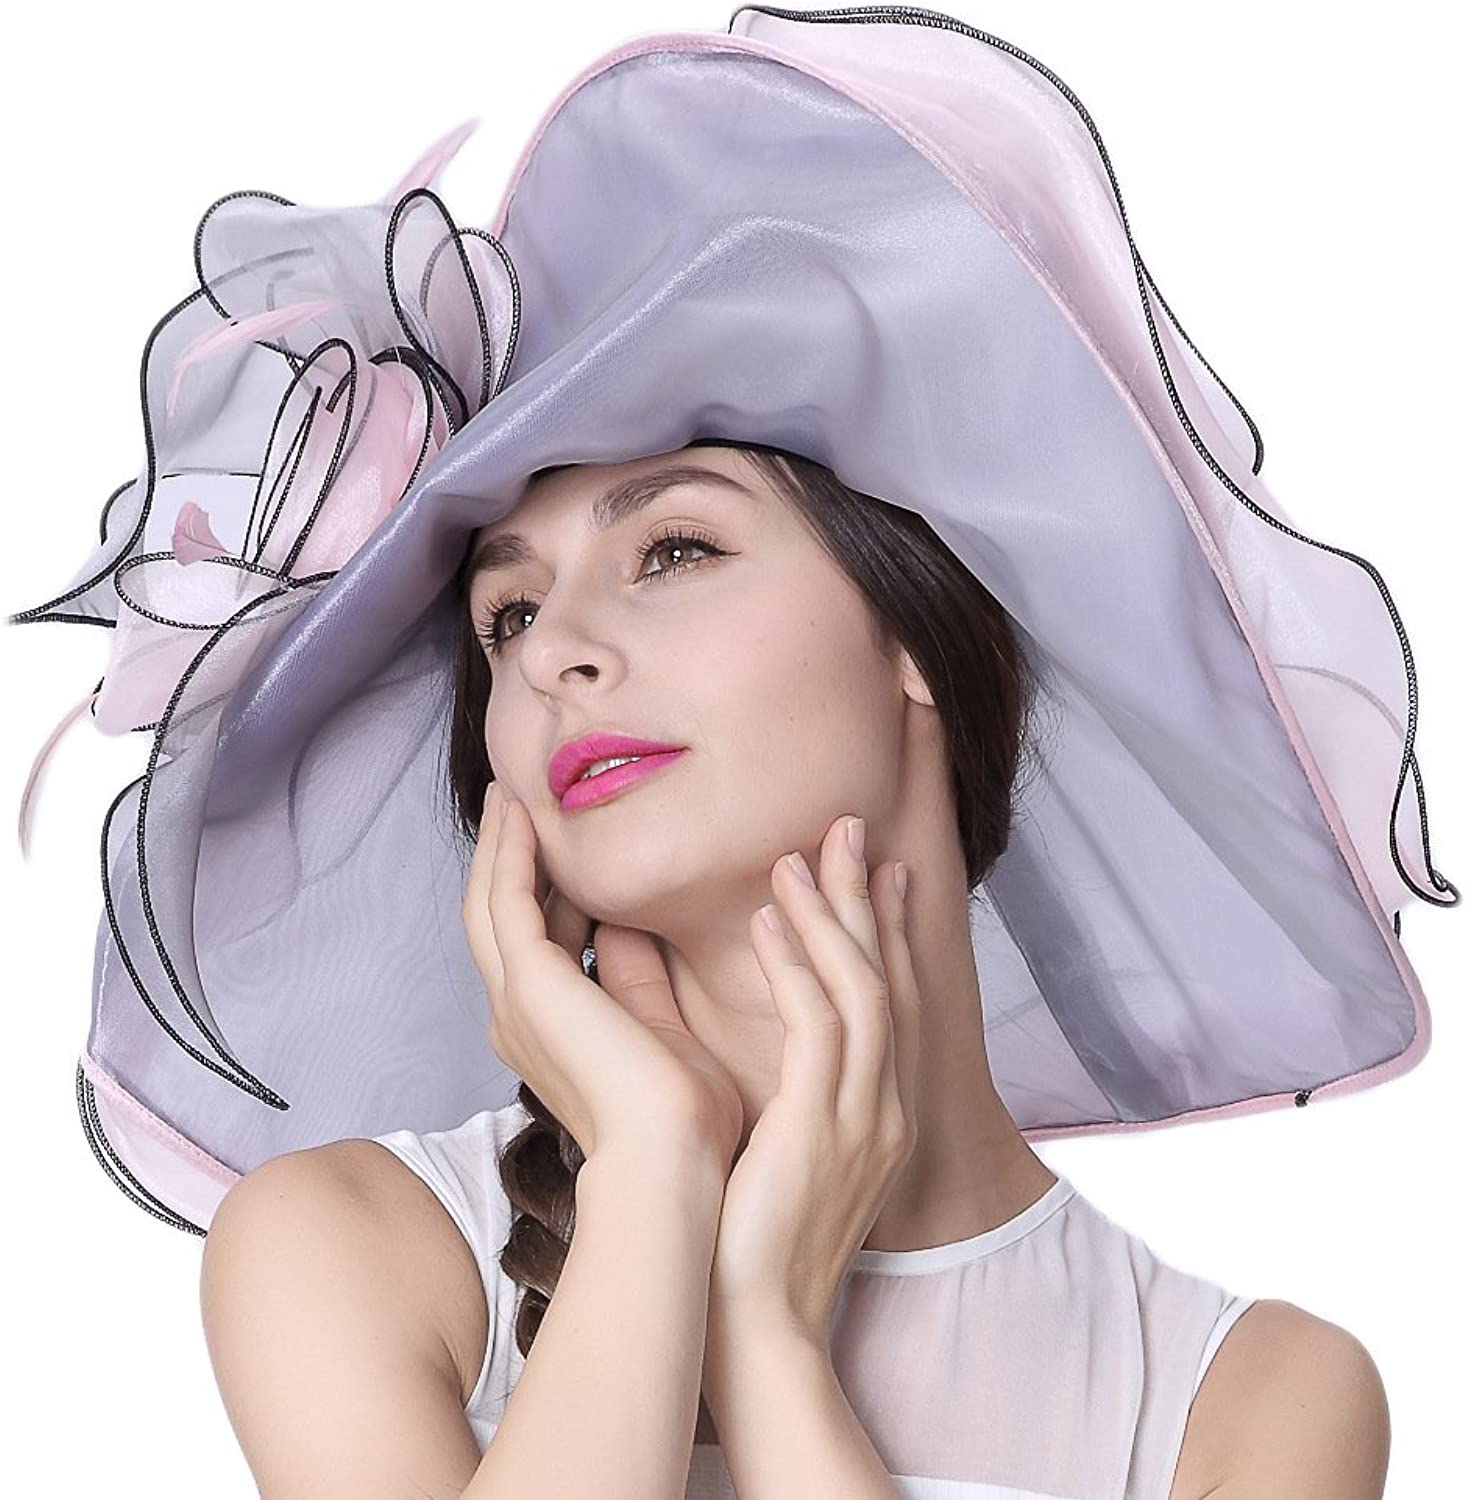 June's Young Women Hats 100% Organza Wide Brim Sun Summer Hats